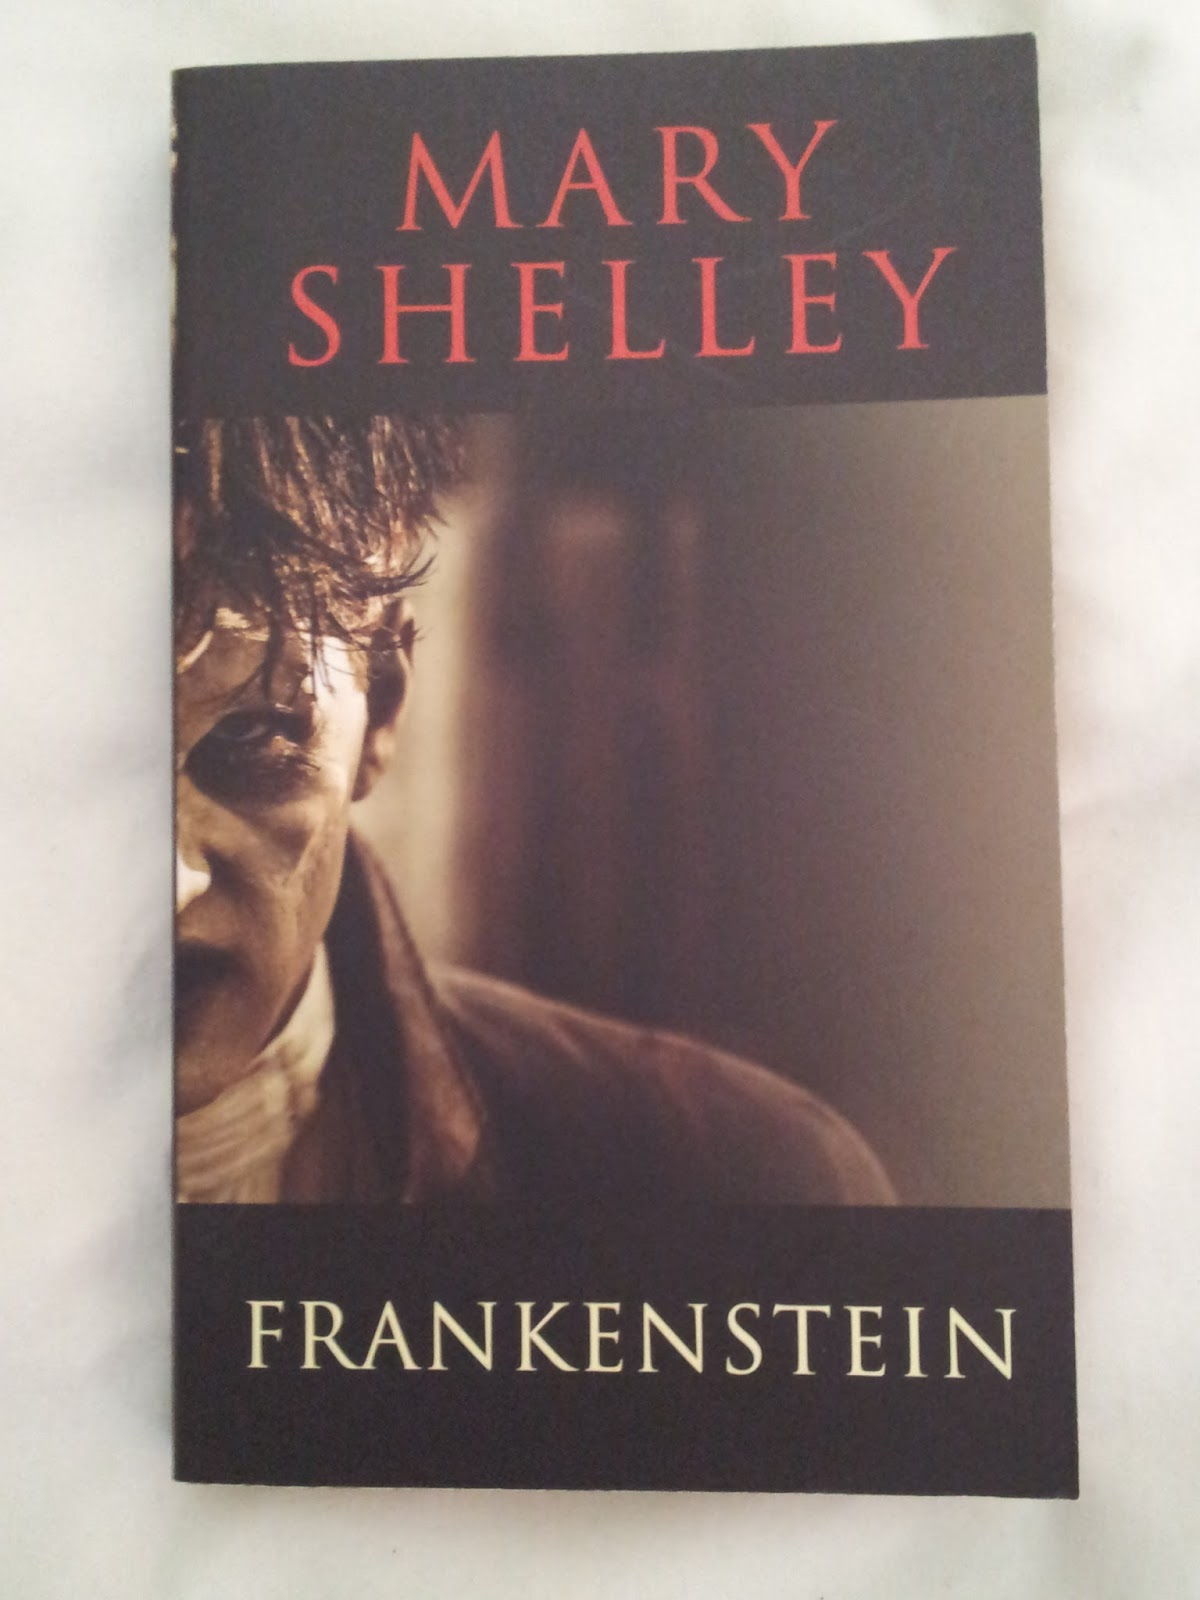 "who was the real monster frankenstein essay The real monster in frankenstein - sample essay "" in focusing upon the creature's first murder, the moment where he becomes truly ""demonic"", shelley encourages us to consider how our personalities are formed and what forces can transform a man into a monster."